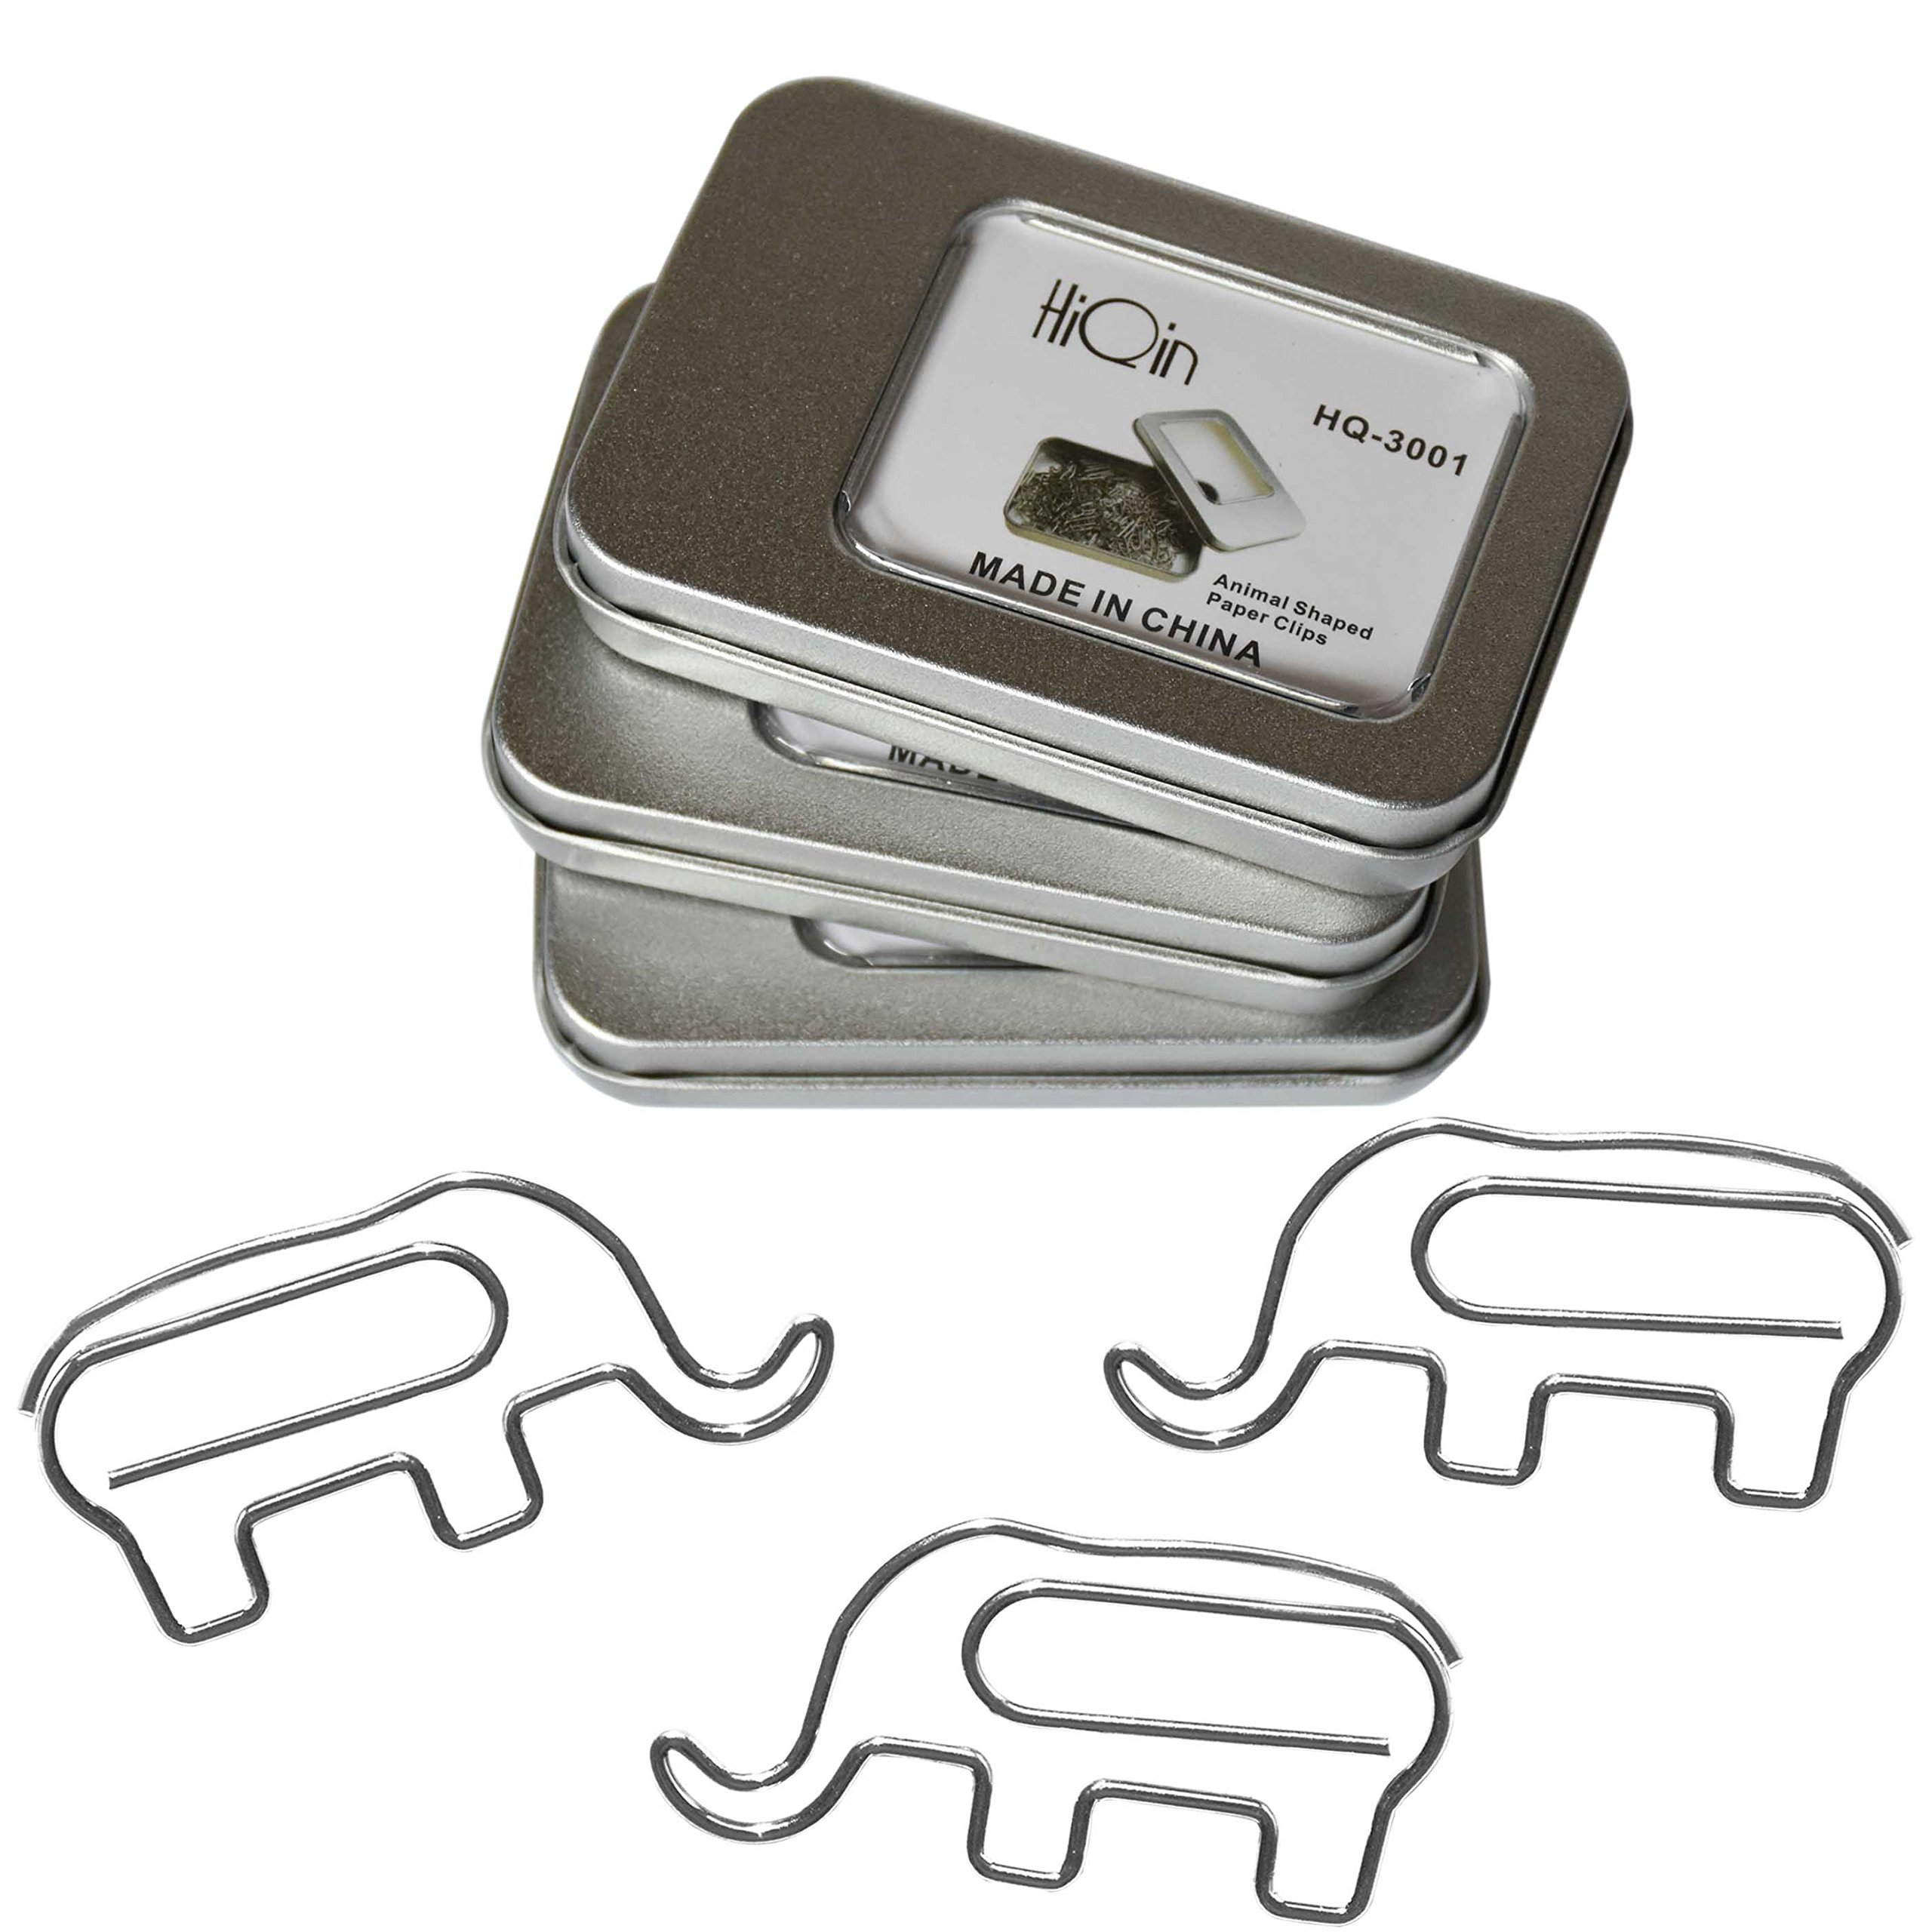 Fun Elephant Paper Clips (3 Boxes) - Cute Desk Accessories Bookmark Clips Page Markers - Office Supplies Gift for Coworkers